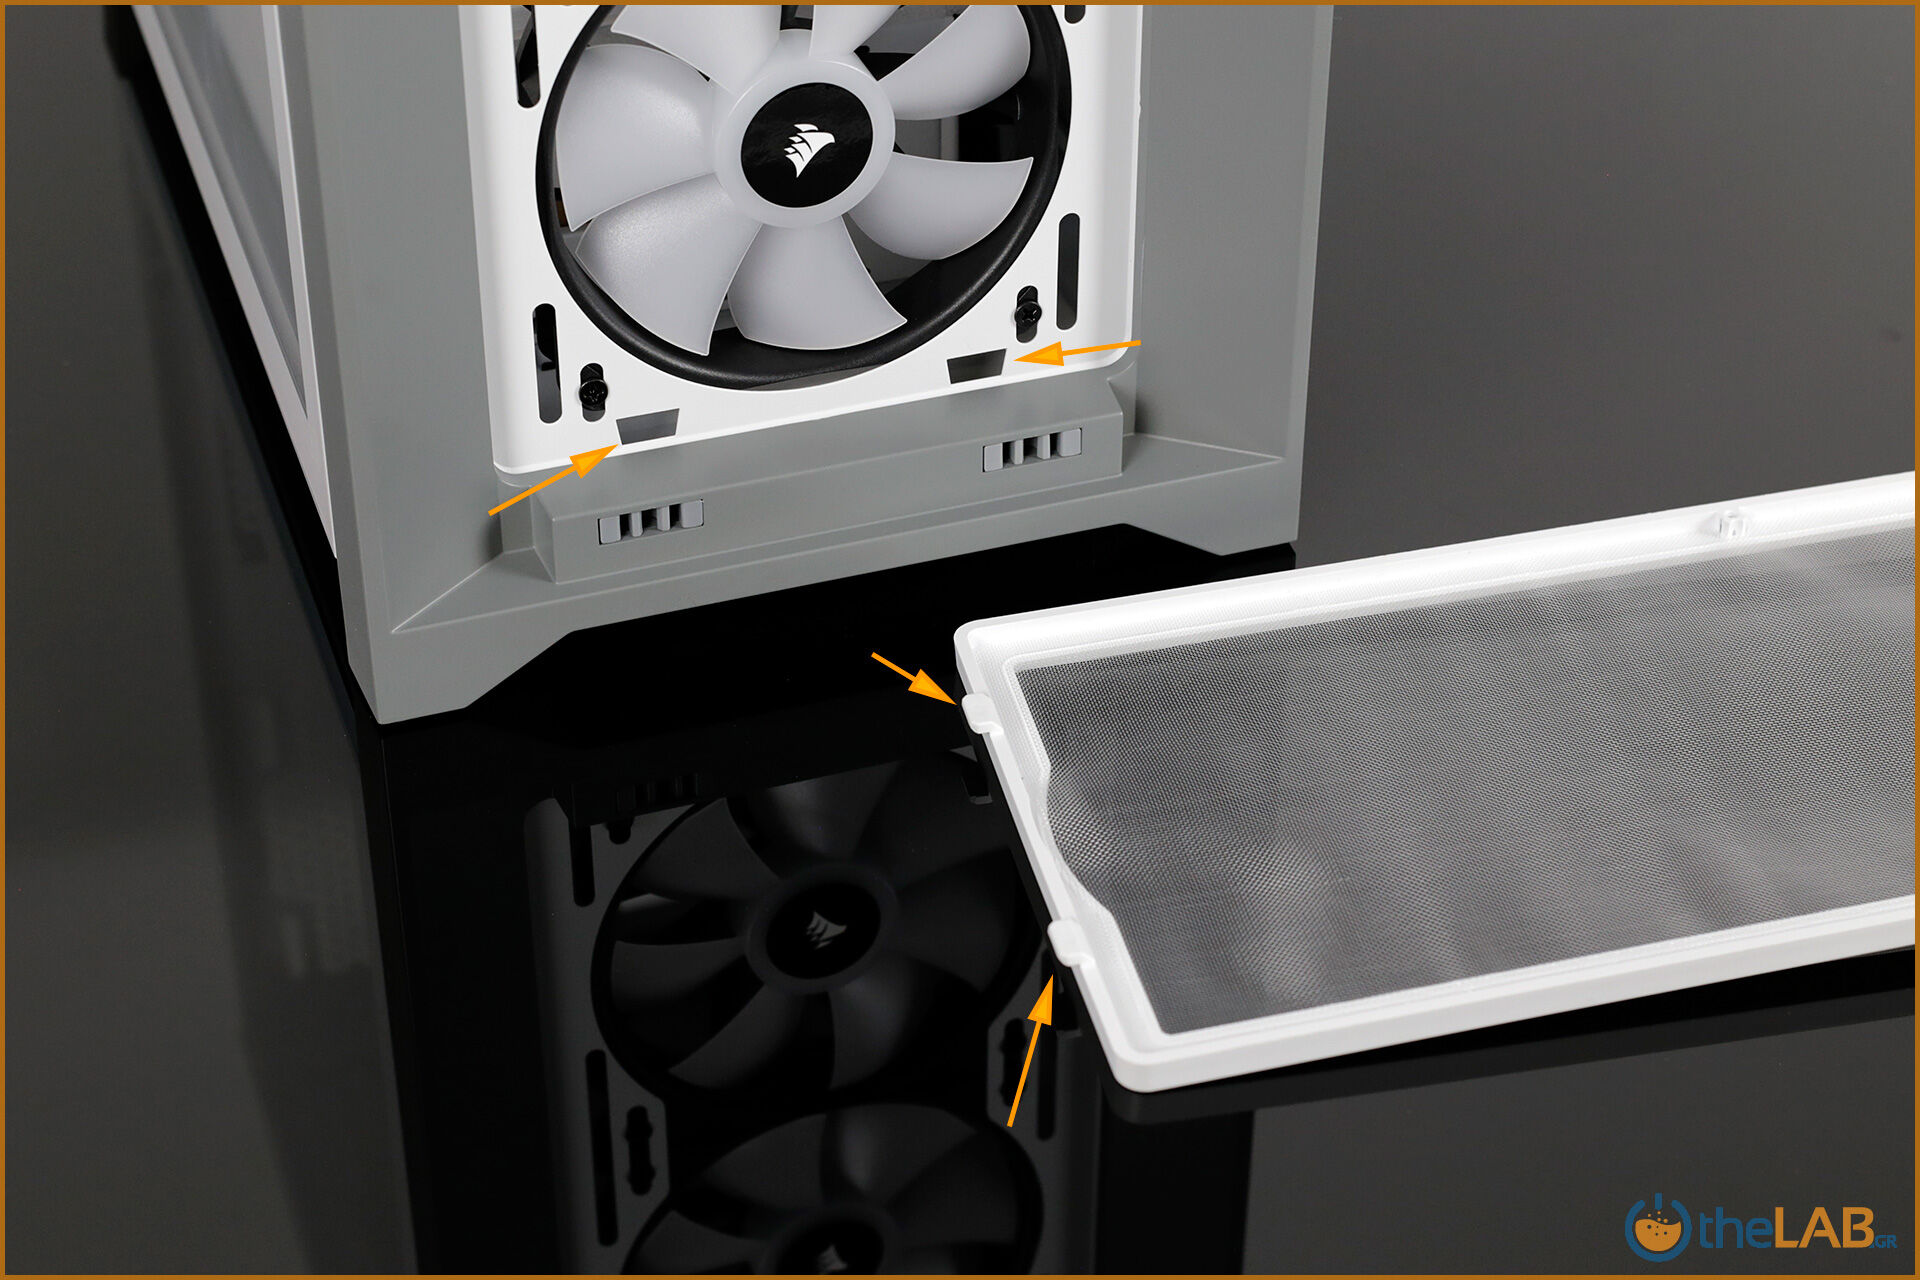 Corsair_icue_4000x_rgb_case_smart_exterior_interior_mid_tower_gaming_case_smart_review_image558.jpg